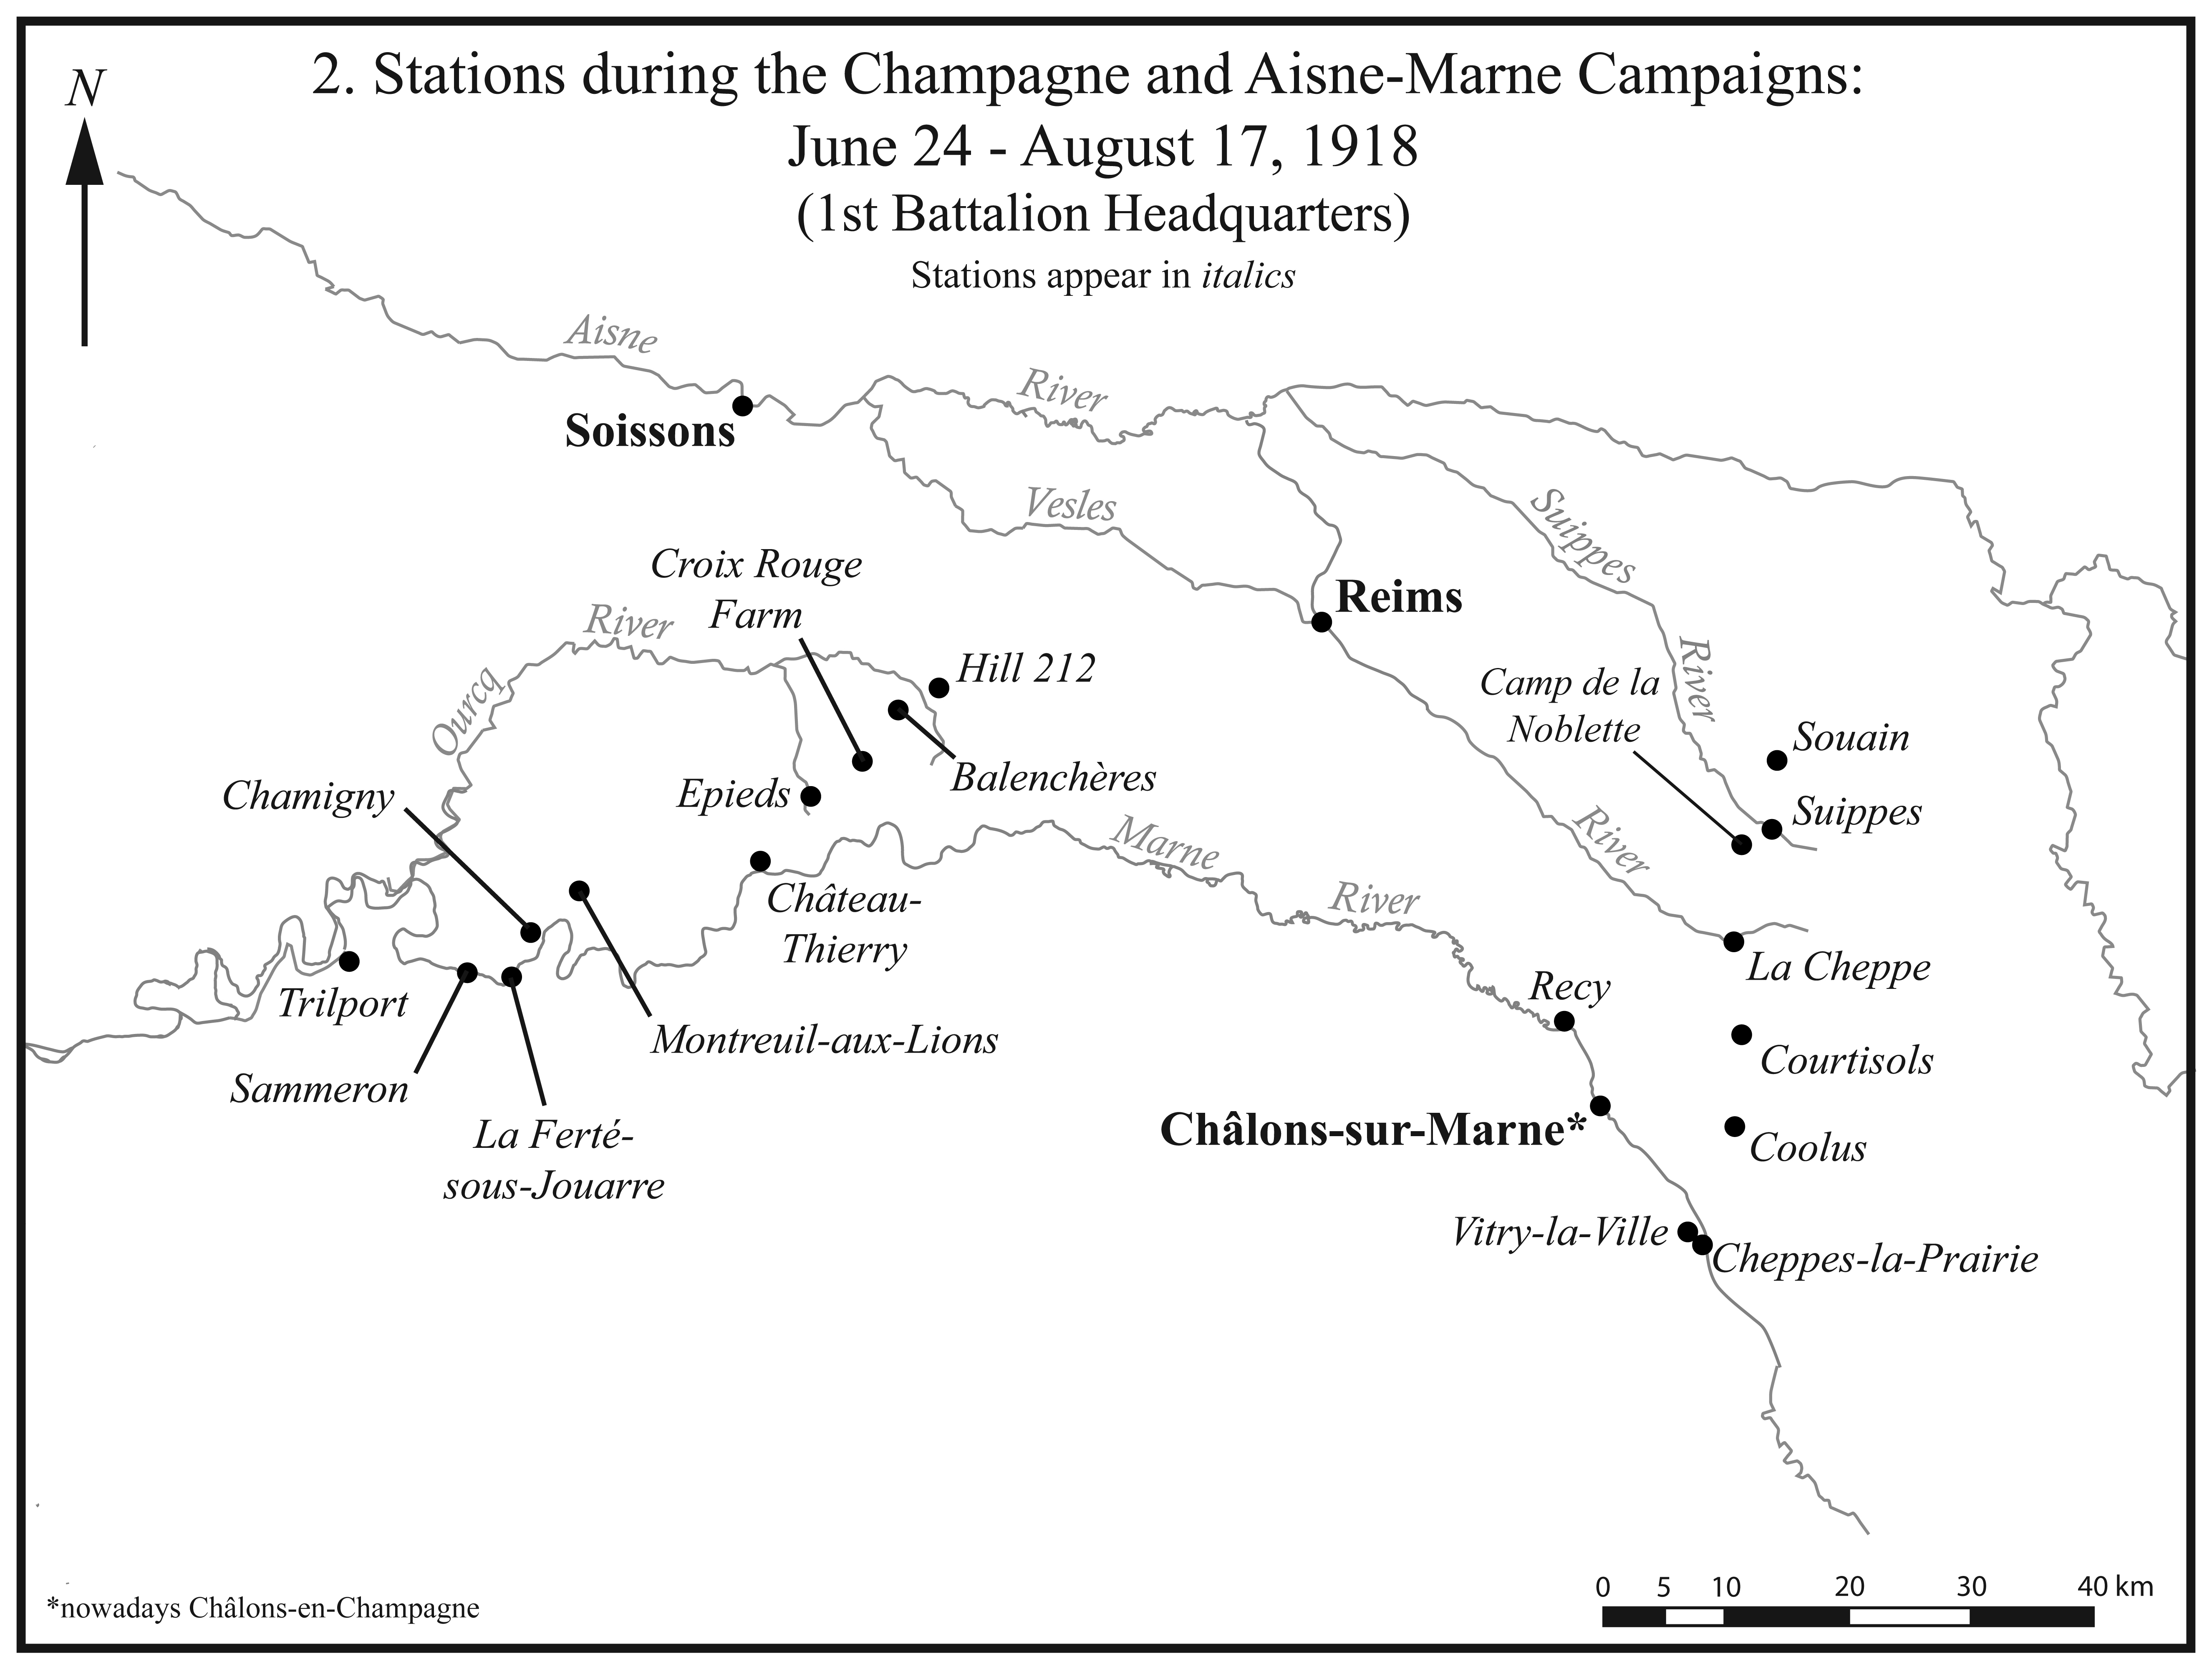 I.2. Stations during the Champagne and Aisne-Marne campaigns.